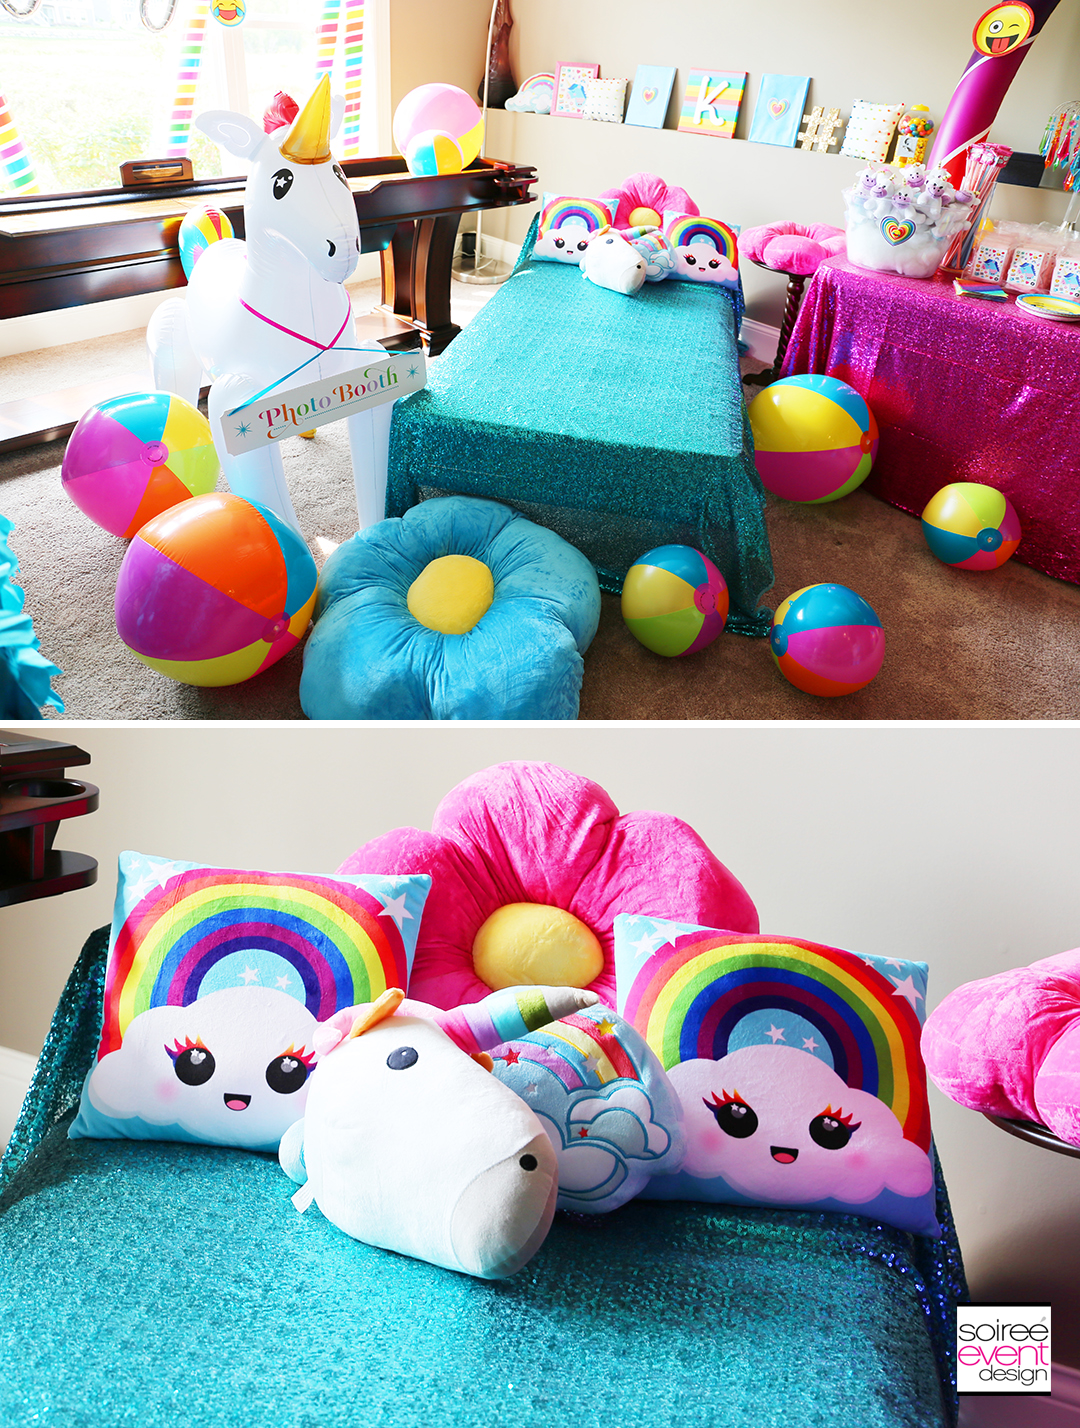 Rainbow Unicorn Emoji Party Ideas - Pillows